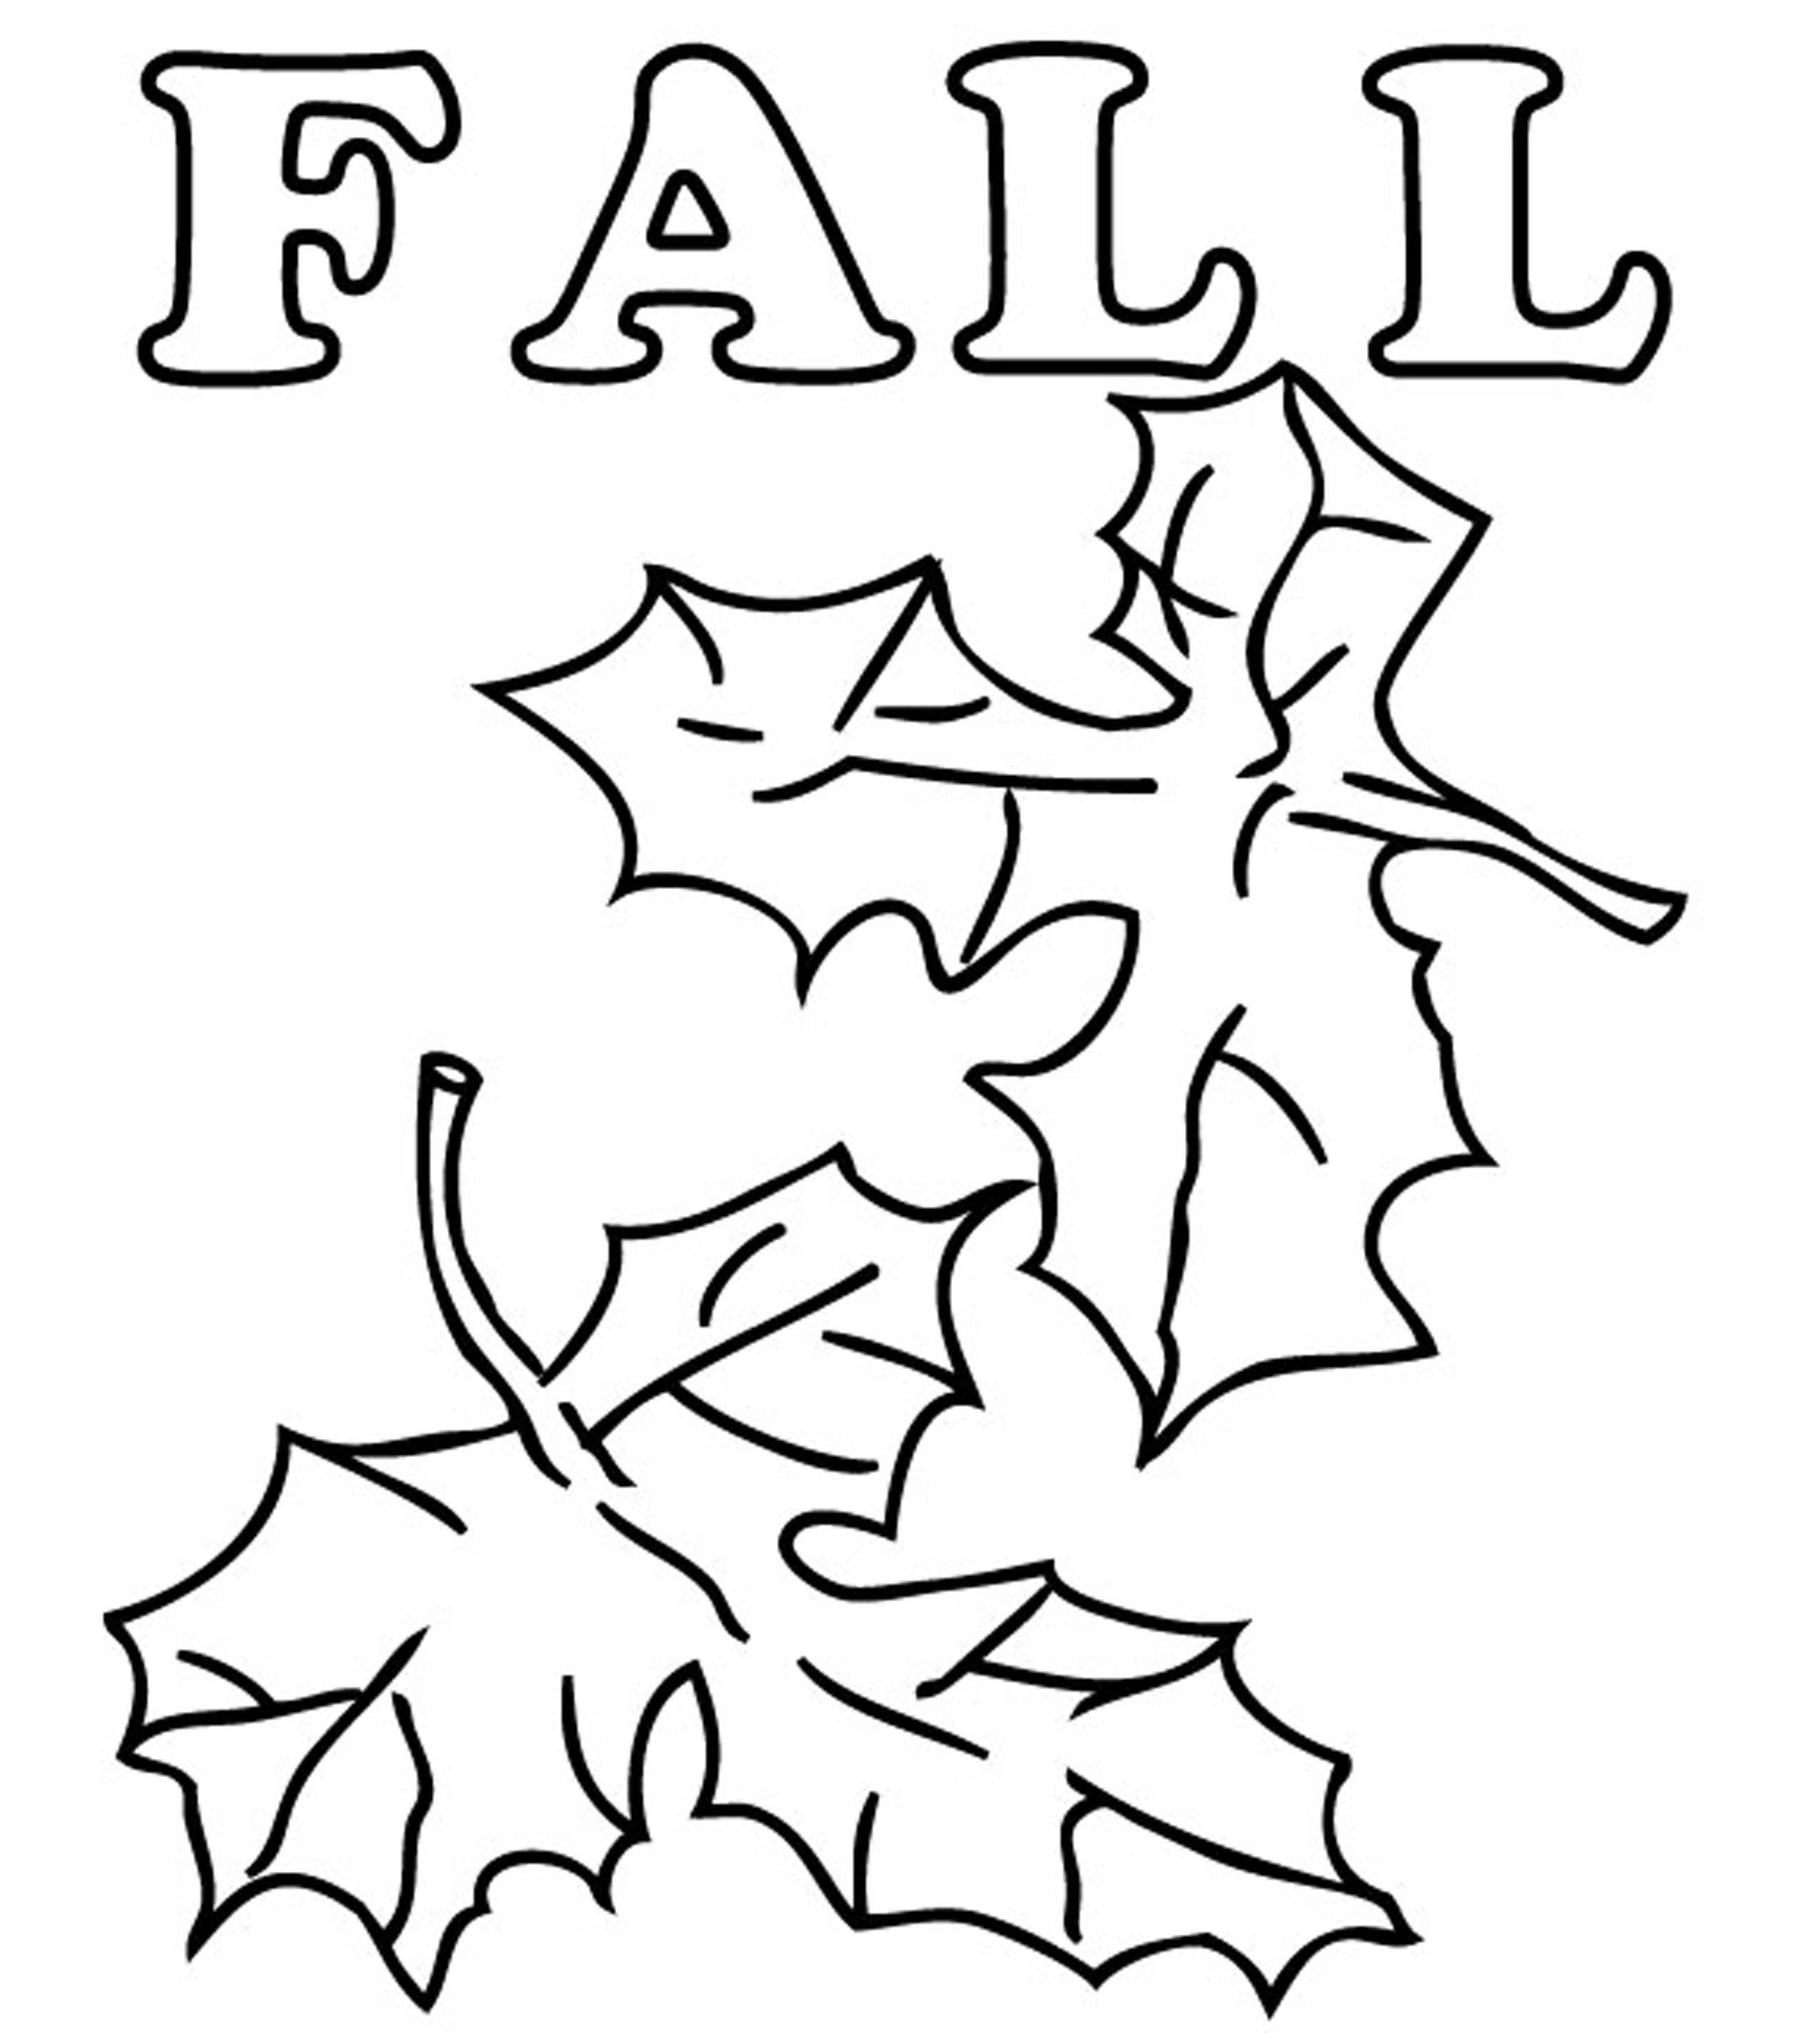 2550x2849 Fall Leaves Clip Art Coloring Coloring Pages Mandalas